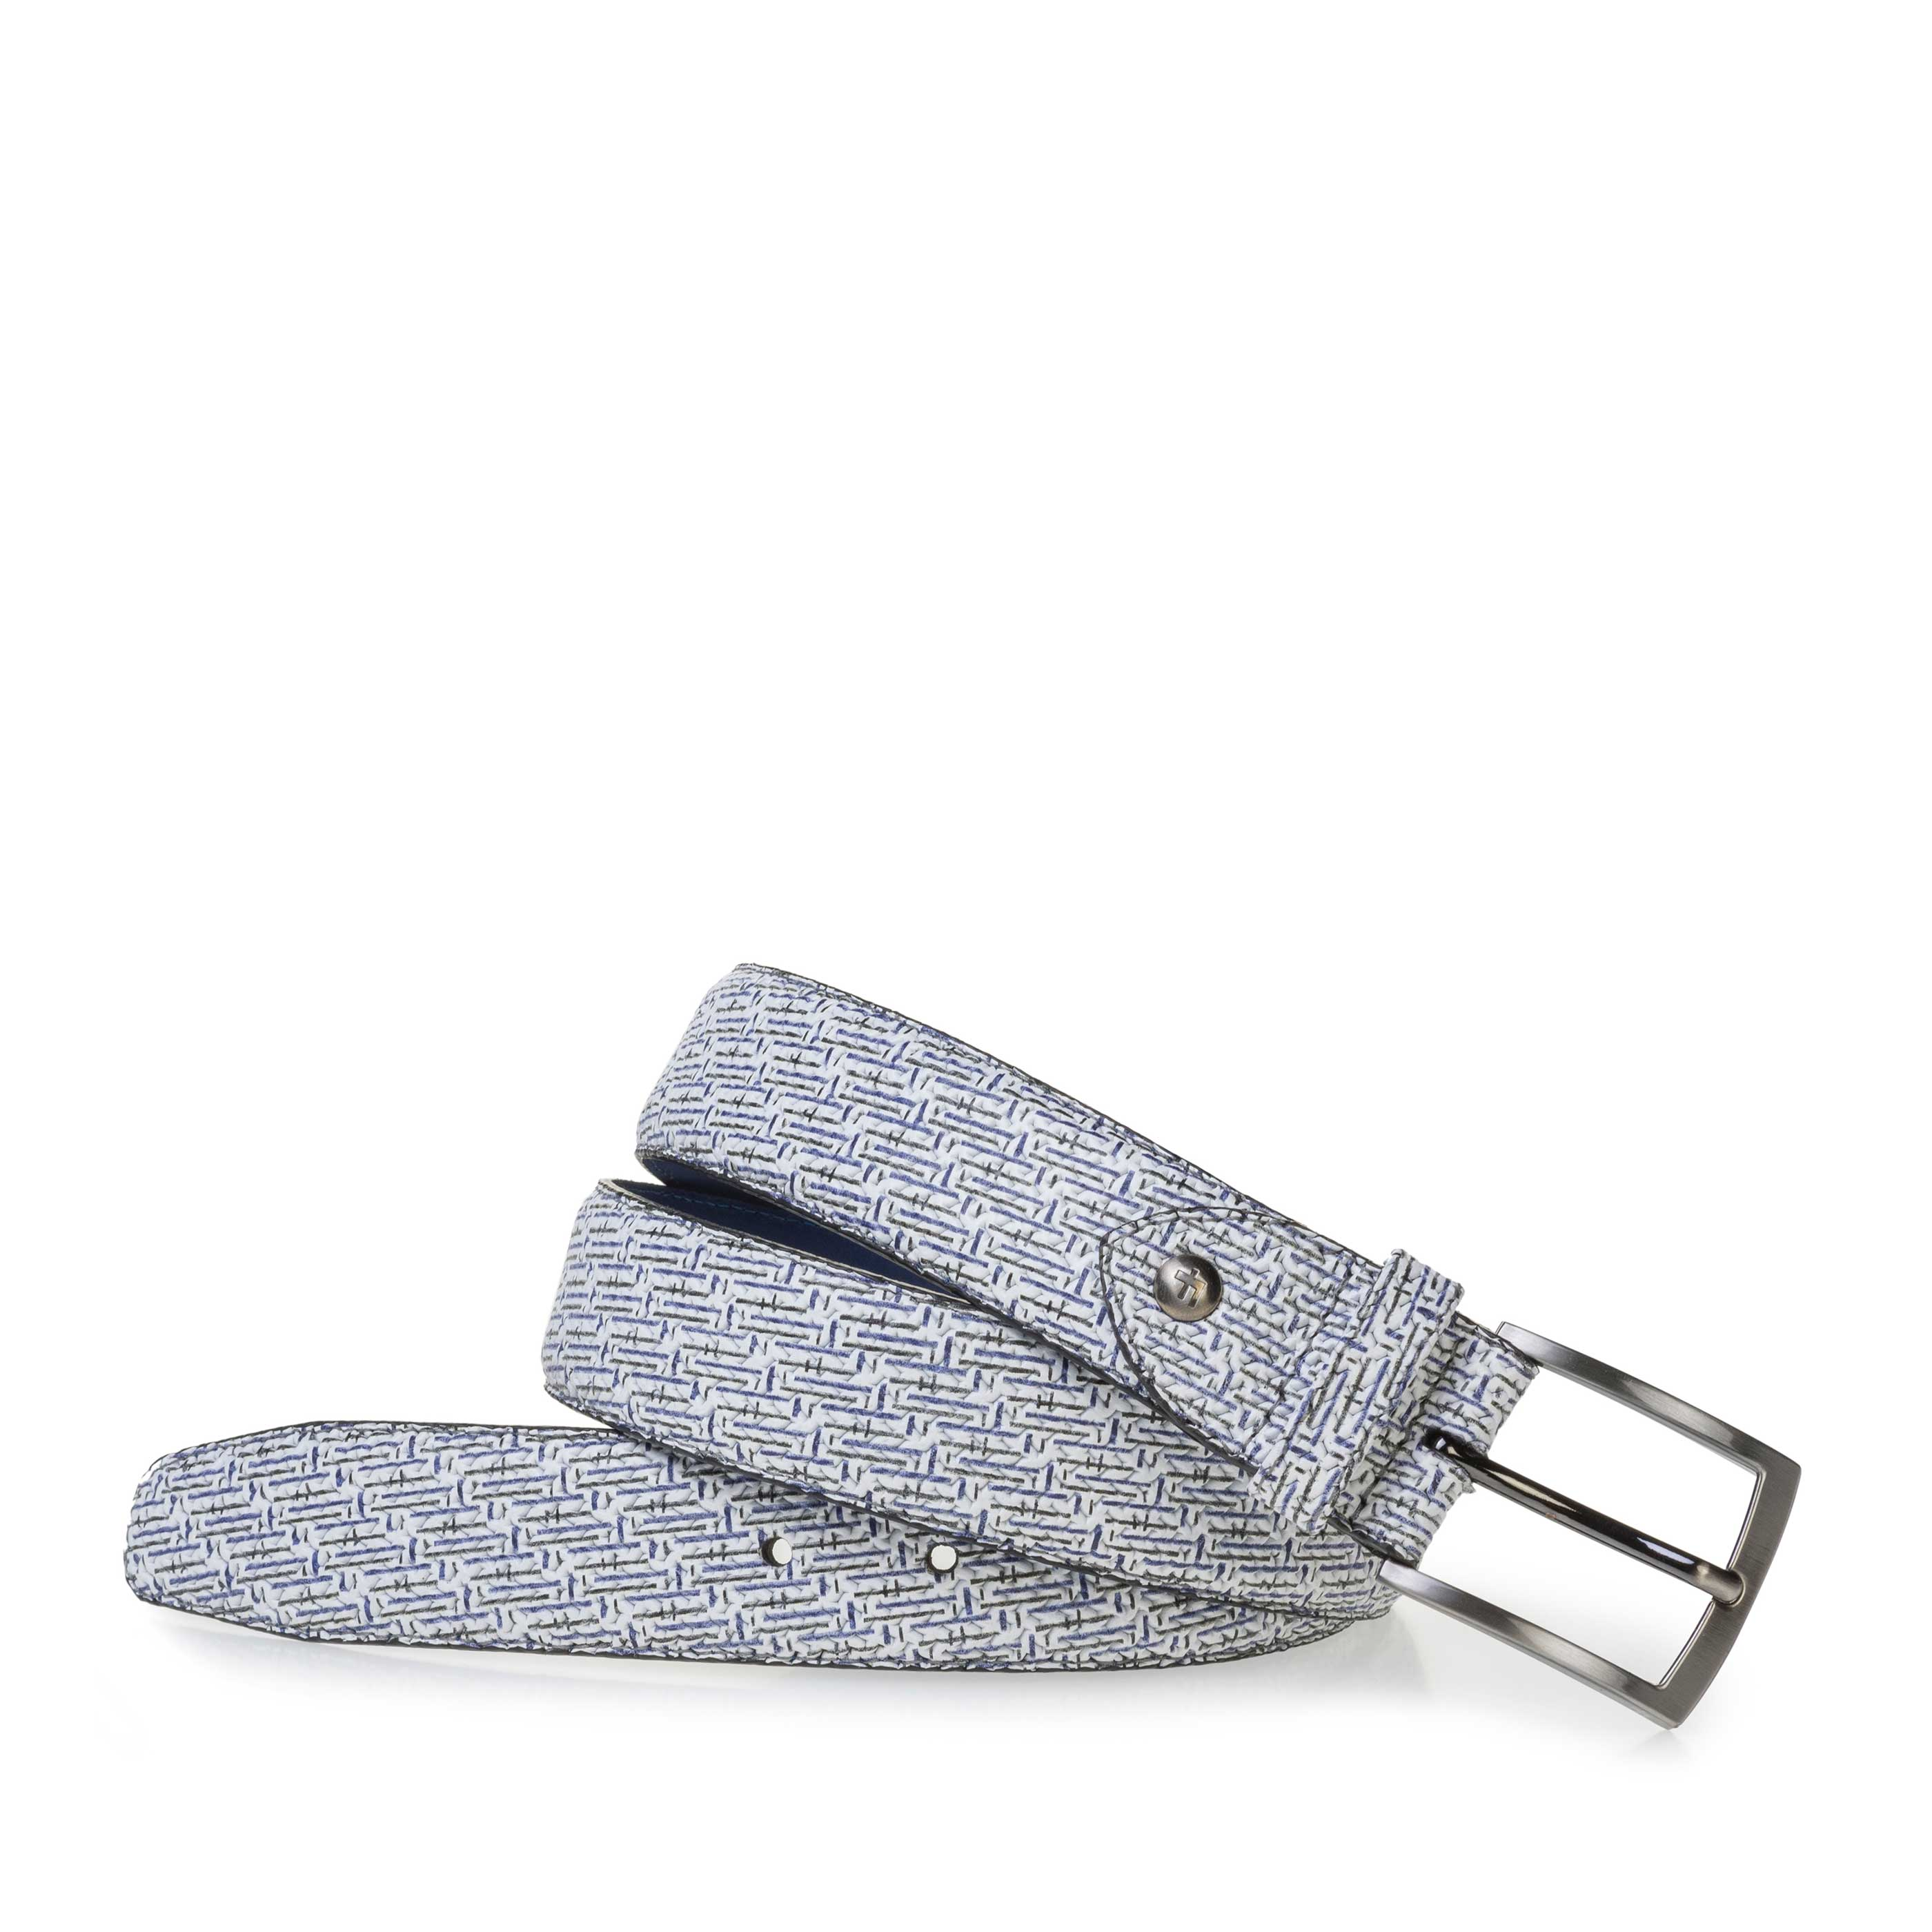 75201/91 - White leather belt with blue print